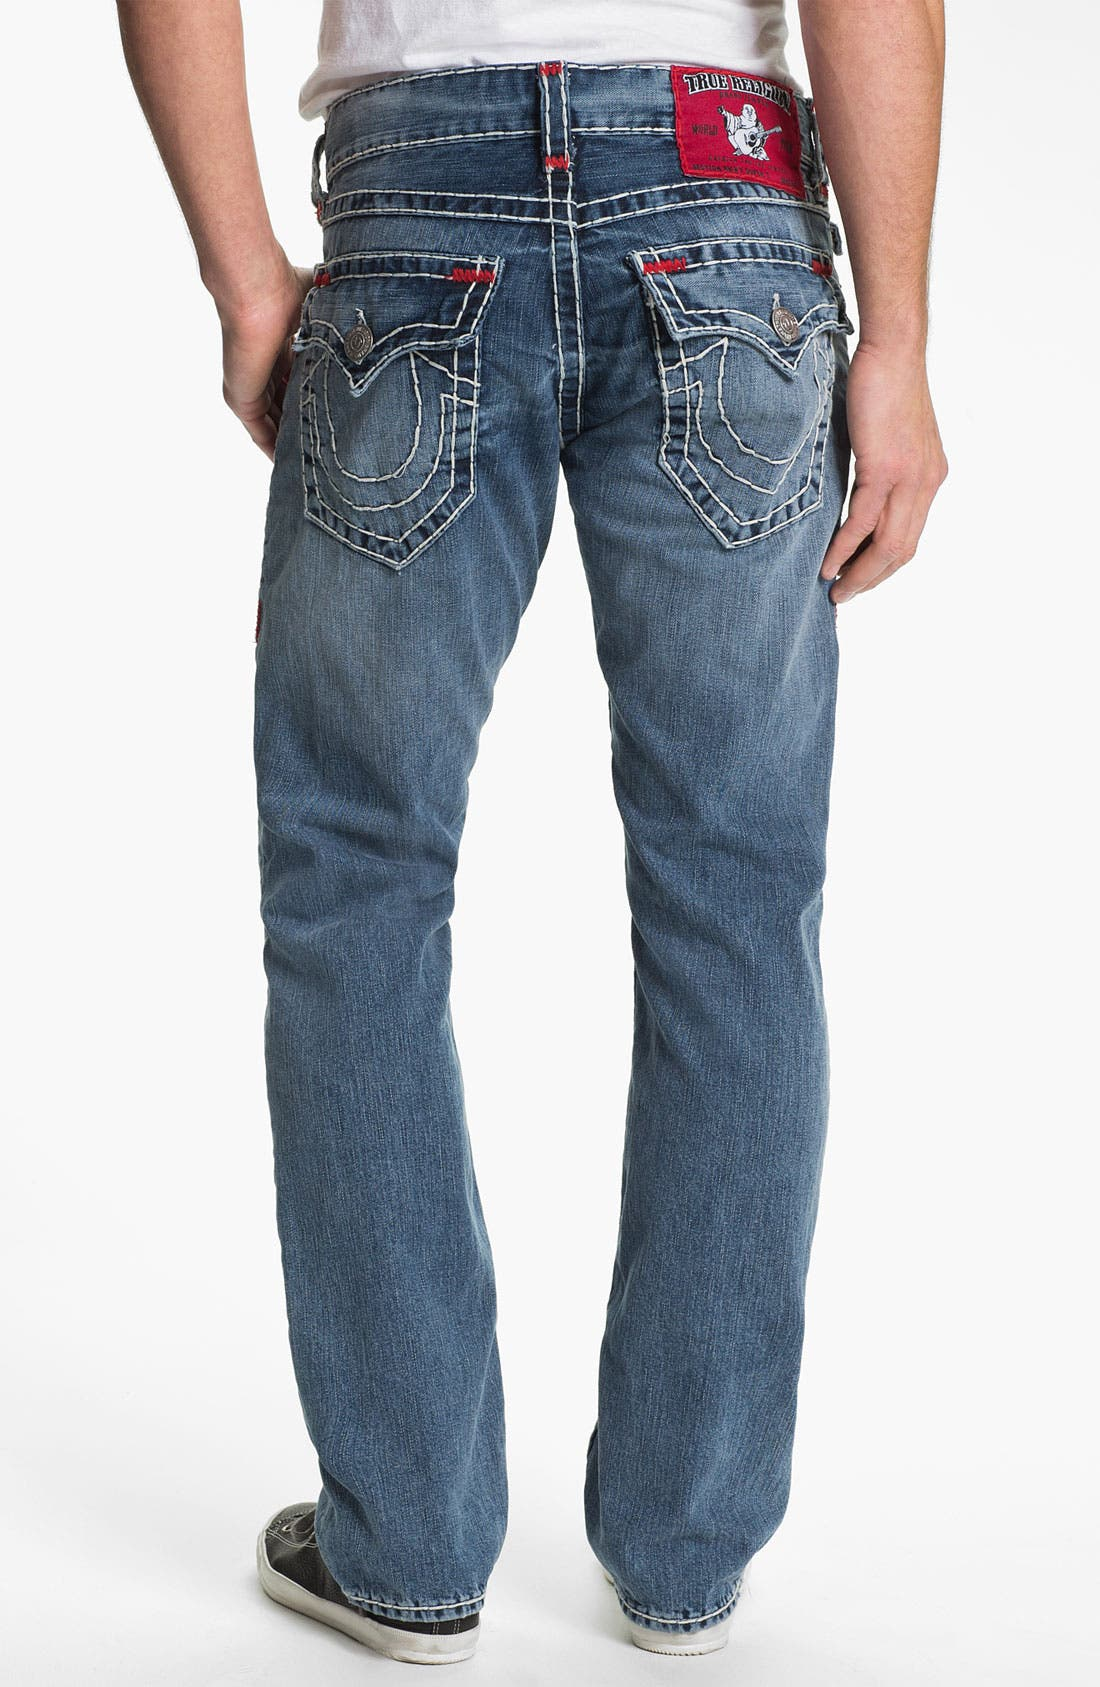 Alternate Image 1 Selected - True Religion Brand Jeans 'Ricky' Straight Leg Jeans (Shade Horizons)